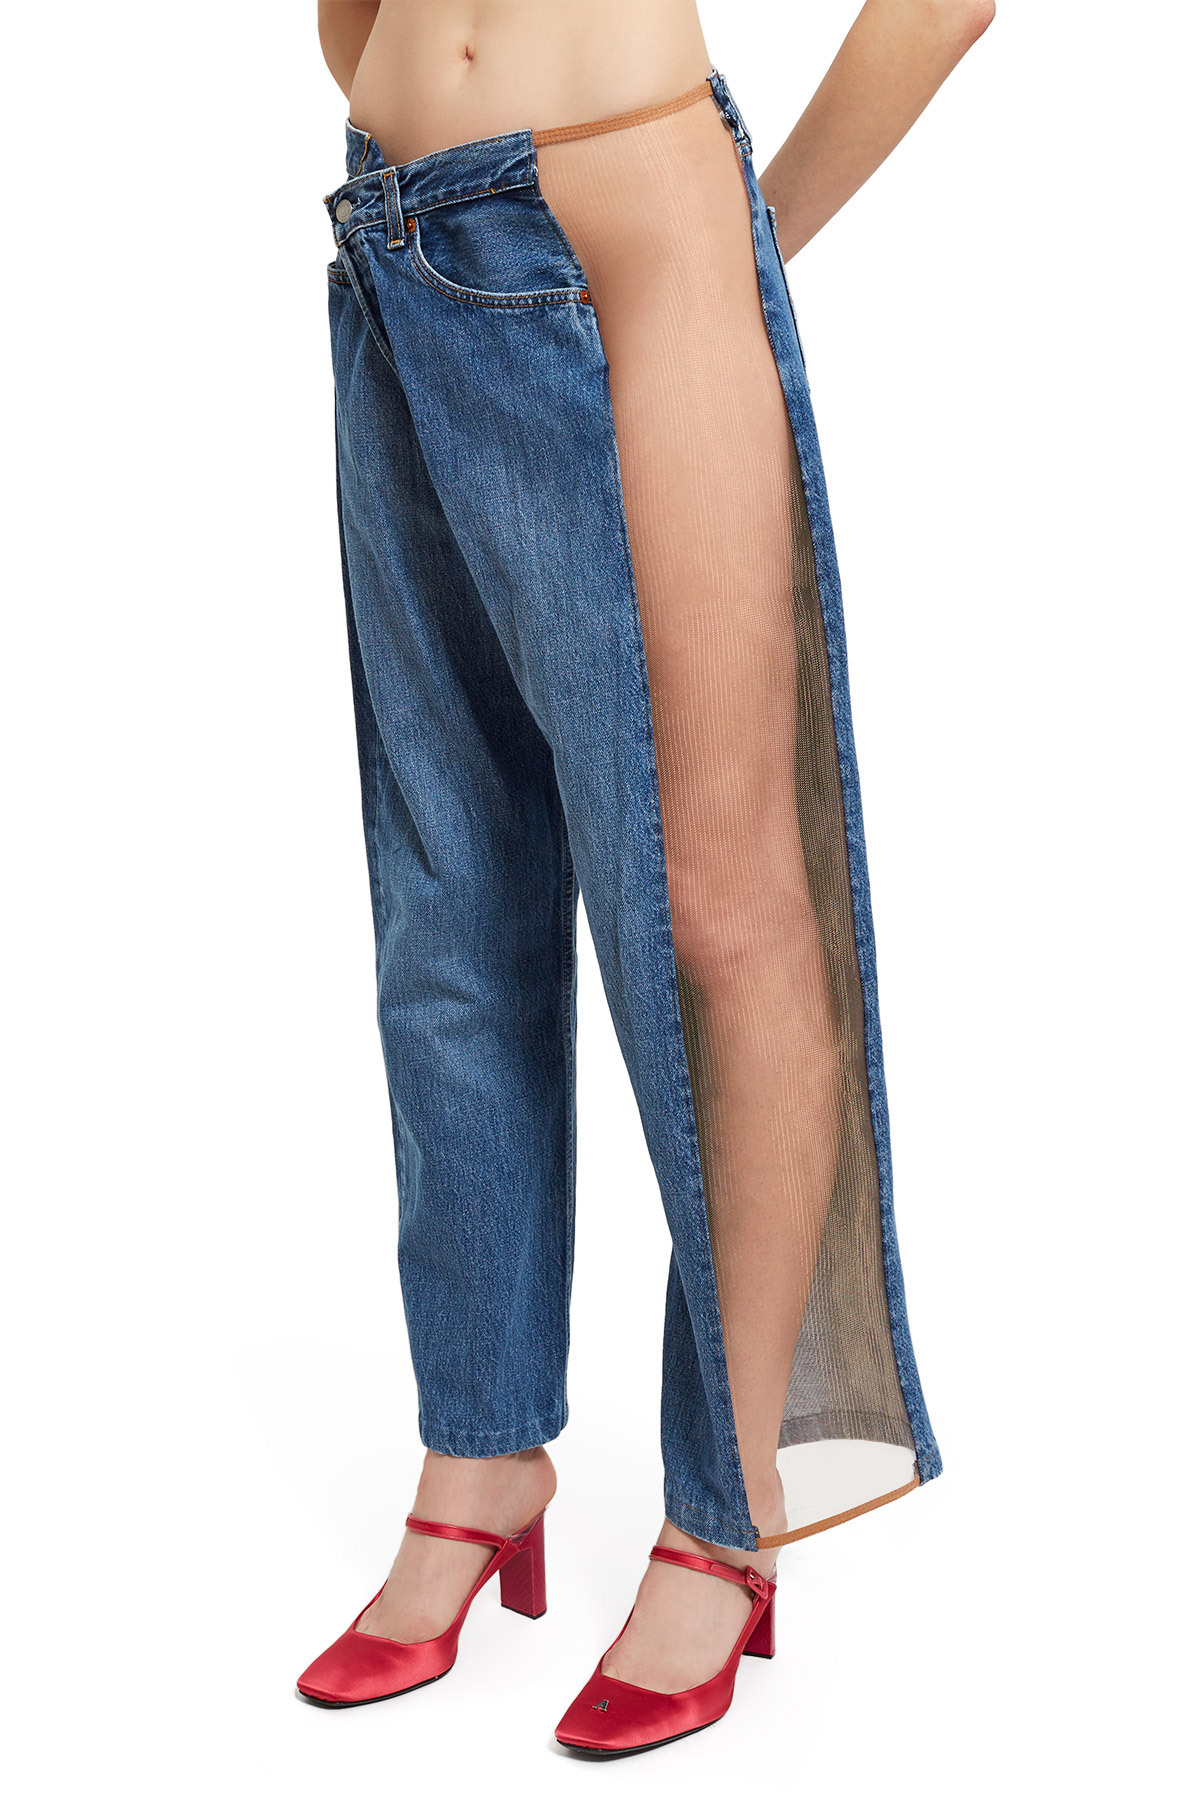 7e96010b0db Not only do these jeans have a weird